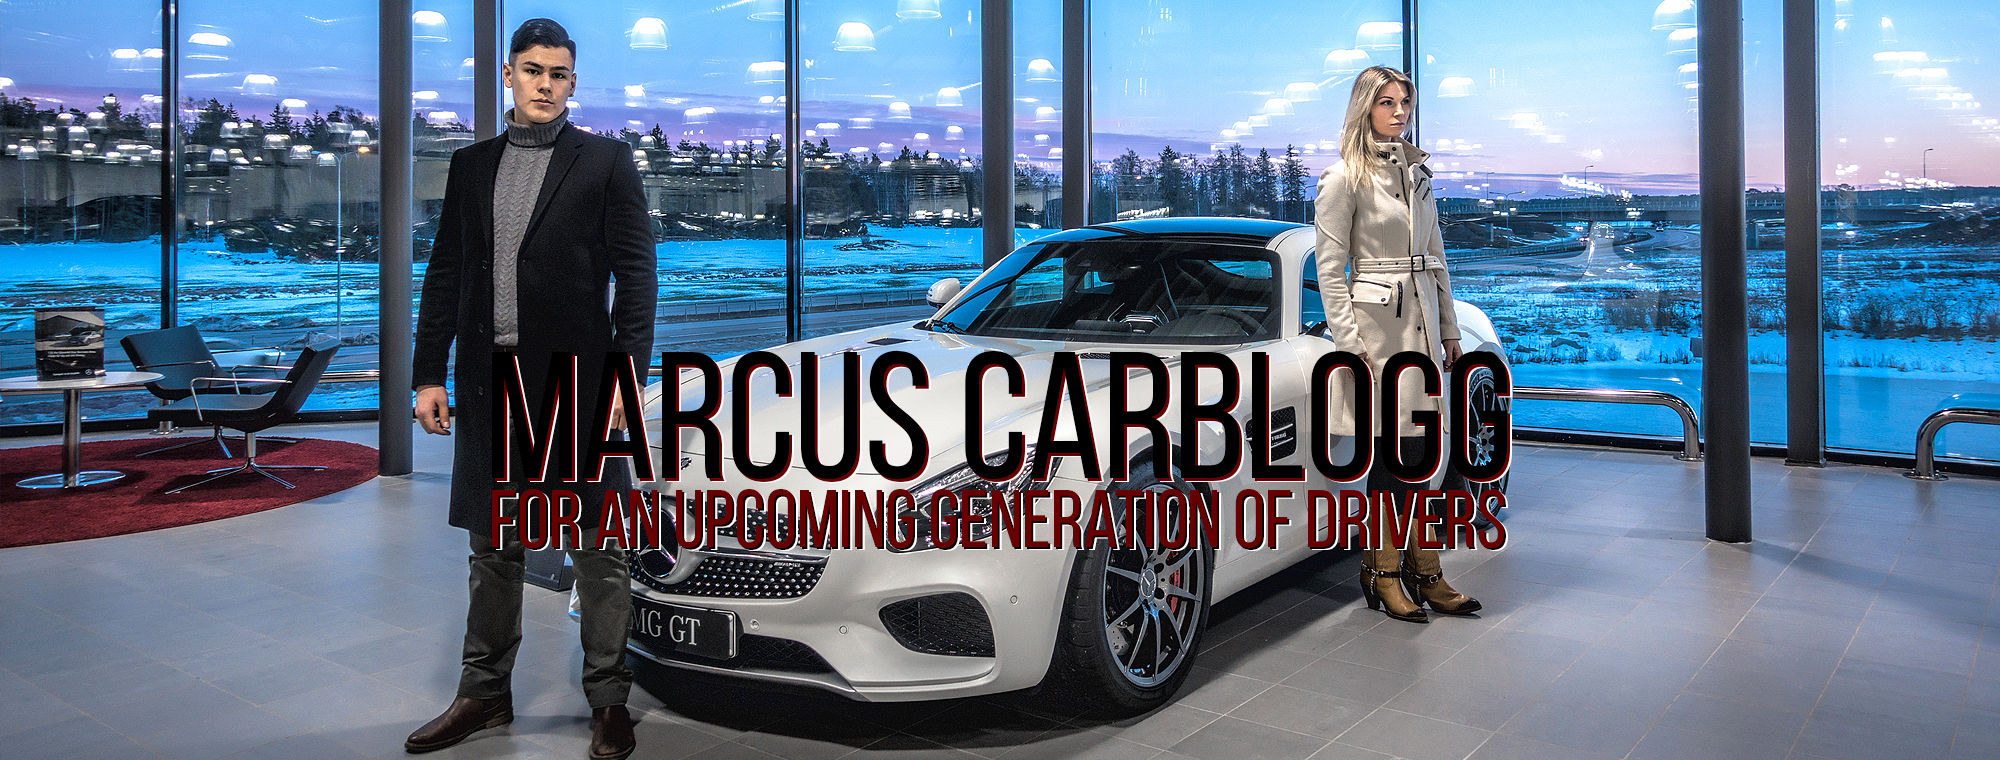 Inspiring.se_MarcusCarBlogg_Facebook_MarcusOlausson_copyright_ChrizPhotography.se_BANNER_startpage_1.jpg